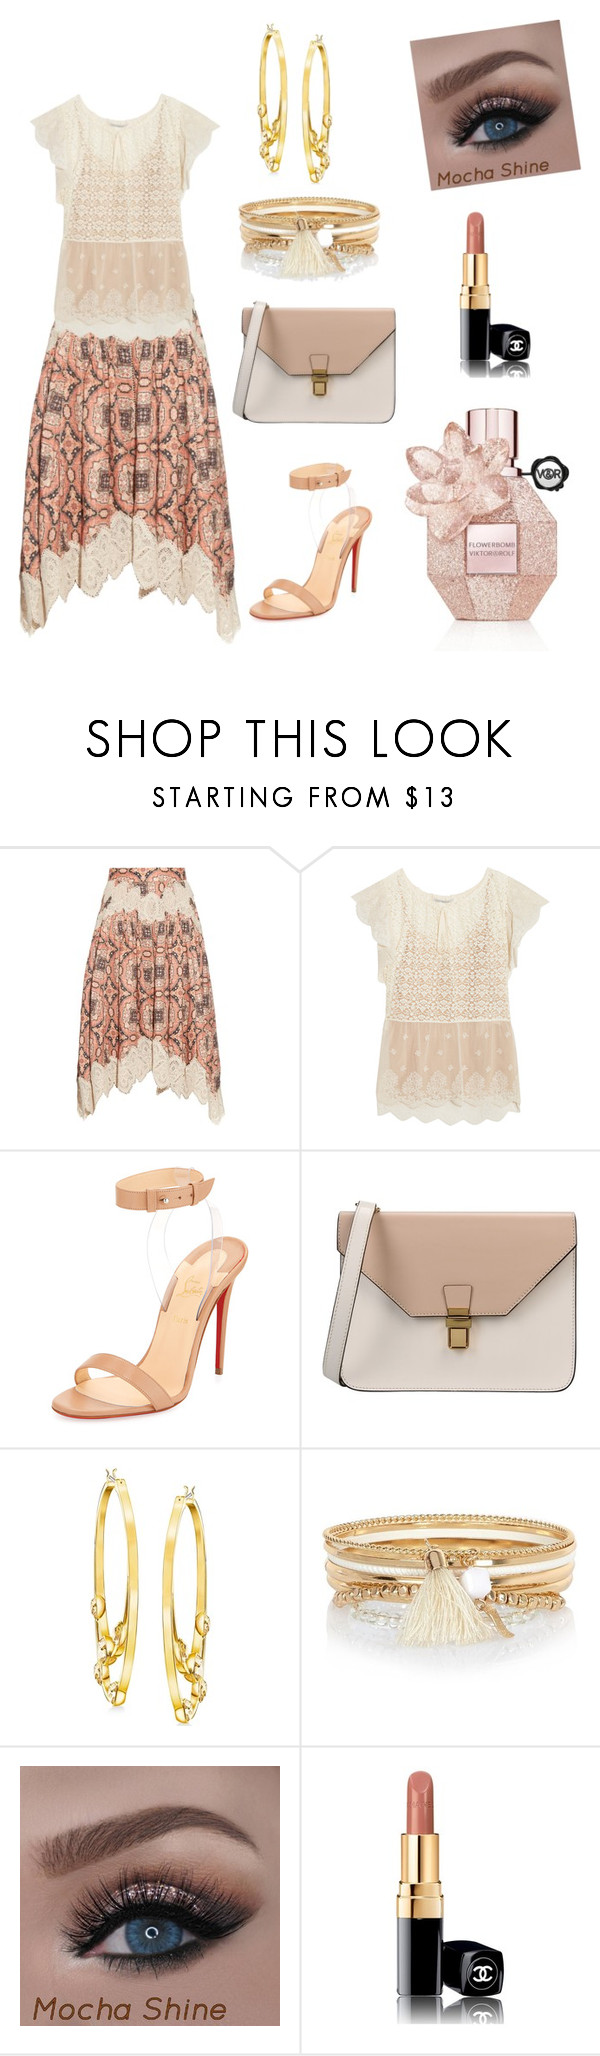 """""""Trending Skirt"""" by gigiglow ❤ liked on Polyvore featuring Zimmermann, STELLA McCARTNEY, Christian Louboutin, 8, Swarovski, River Island and Chanel"""